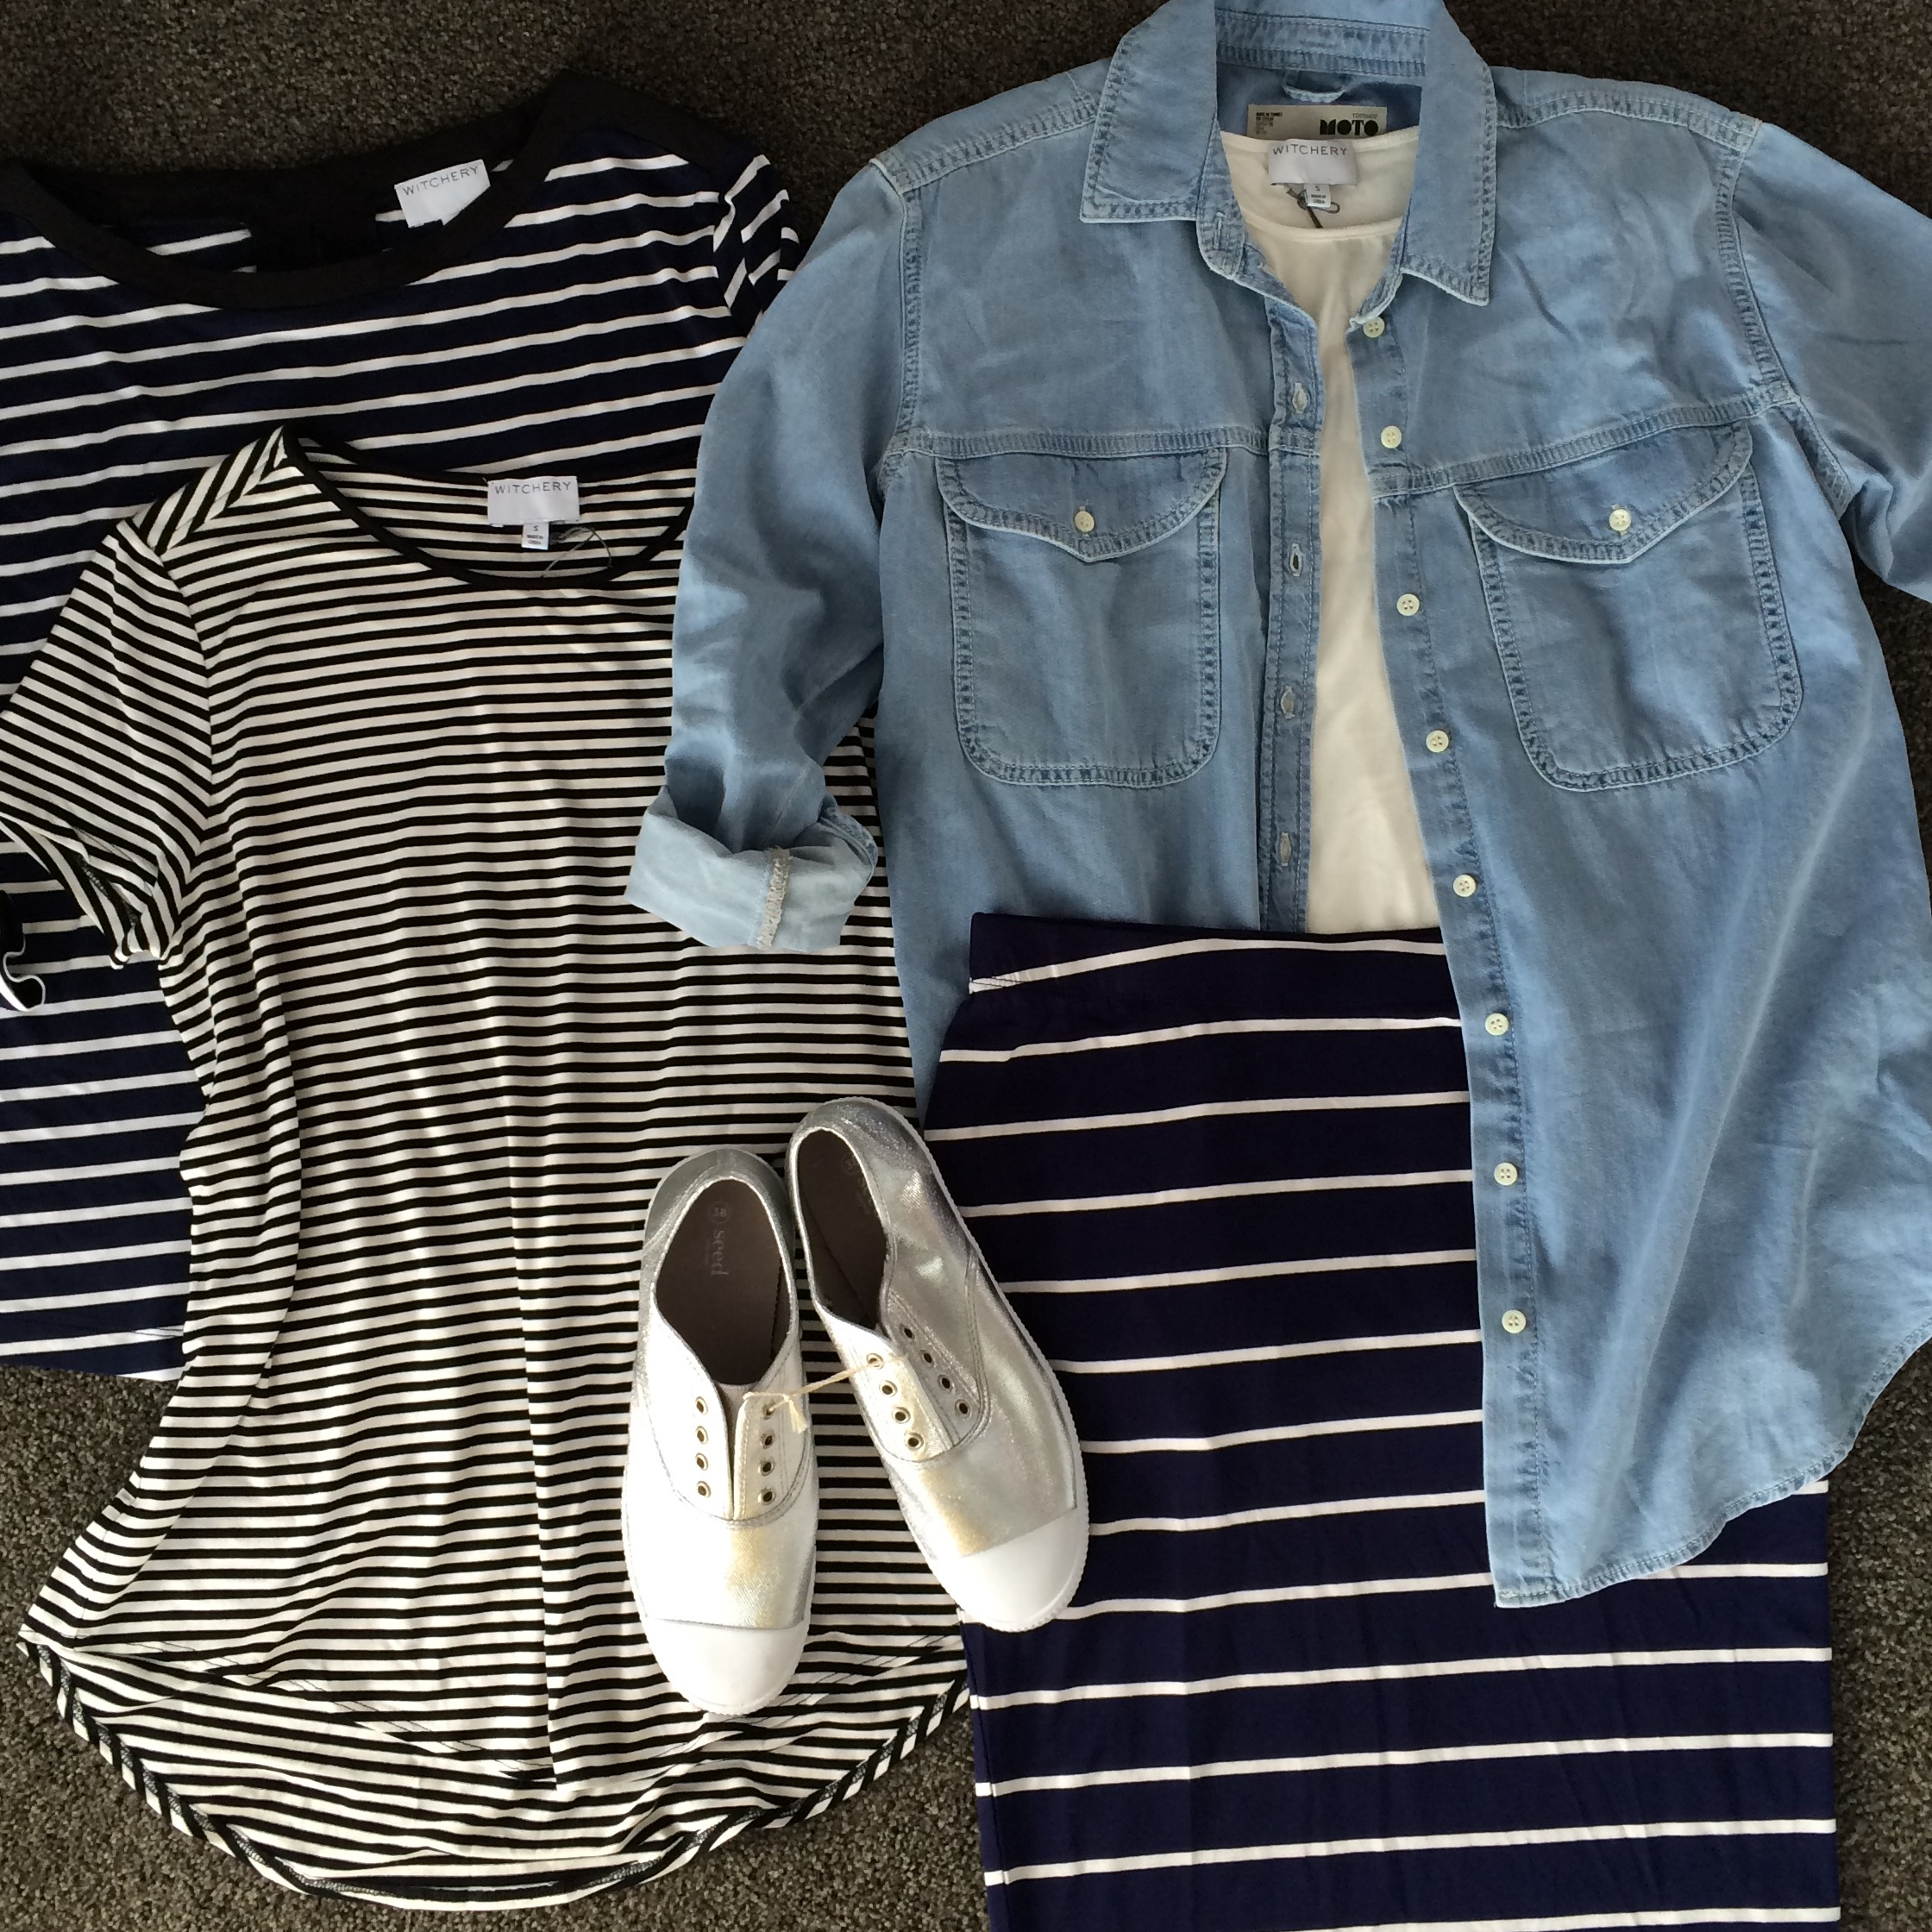 Can't have too many stripes. Loved these t-shirts at Witchery, such a beautiful soft knit. I think my denim shirt from Top Shop will end up being one of favourite purchases from the weekend.